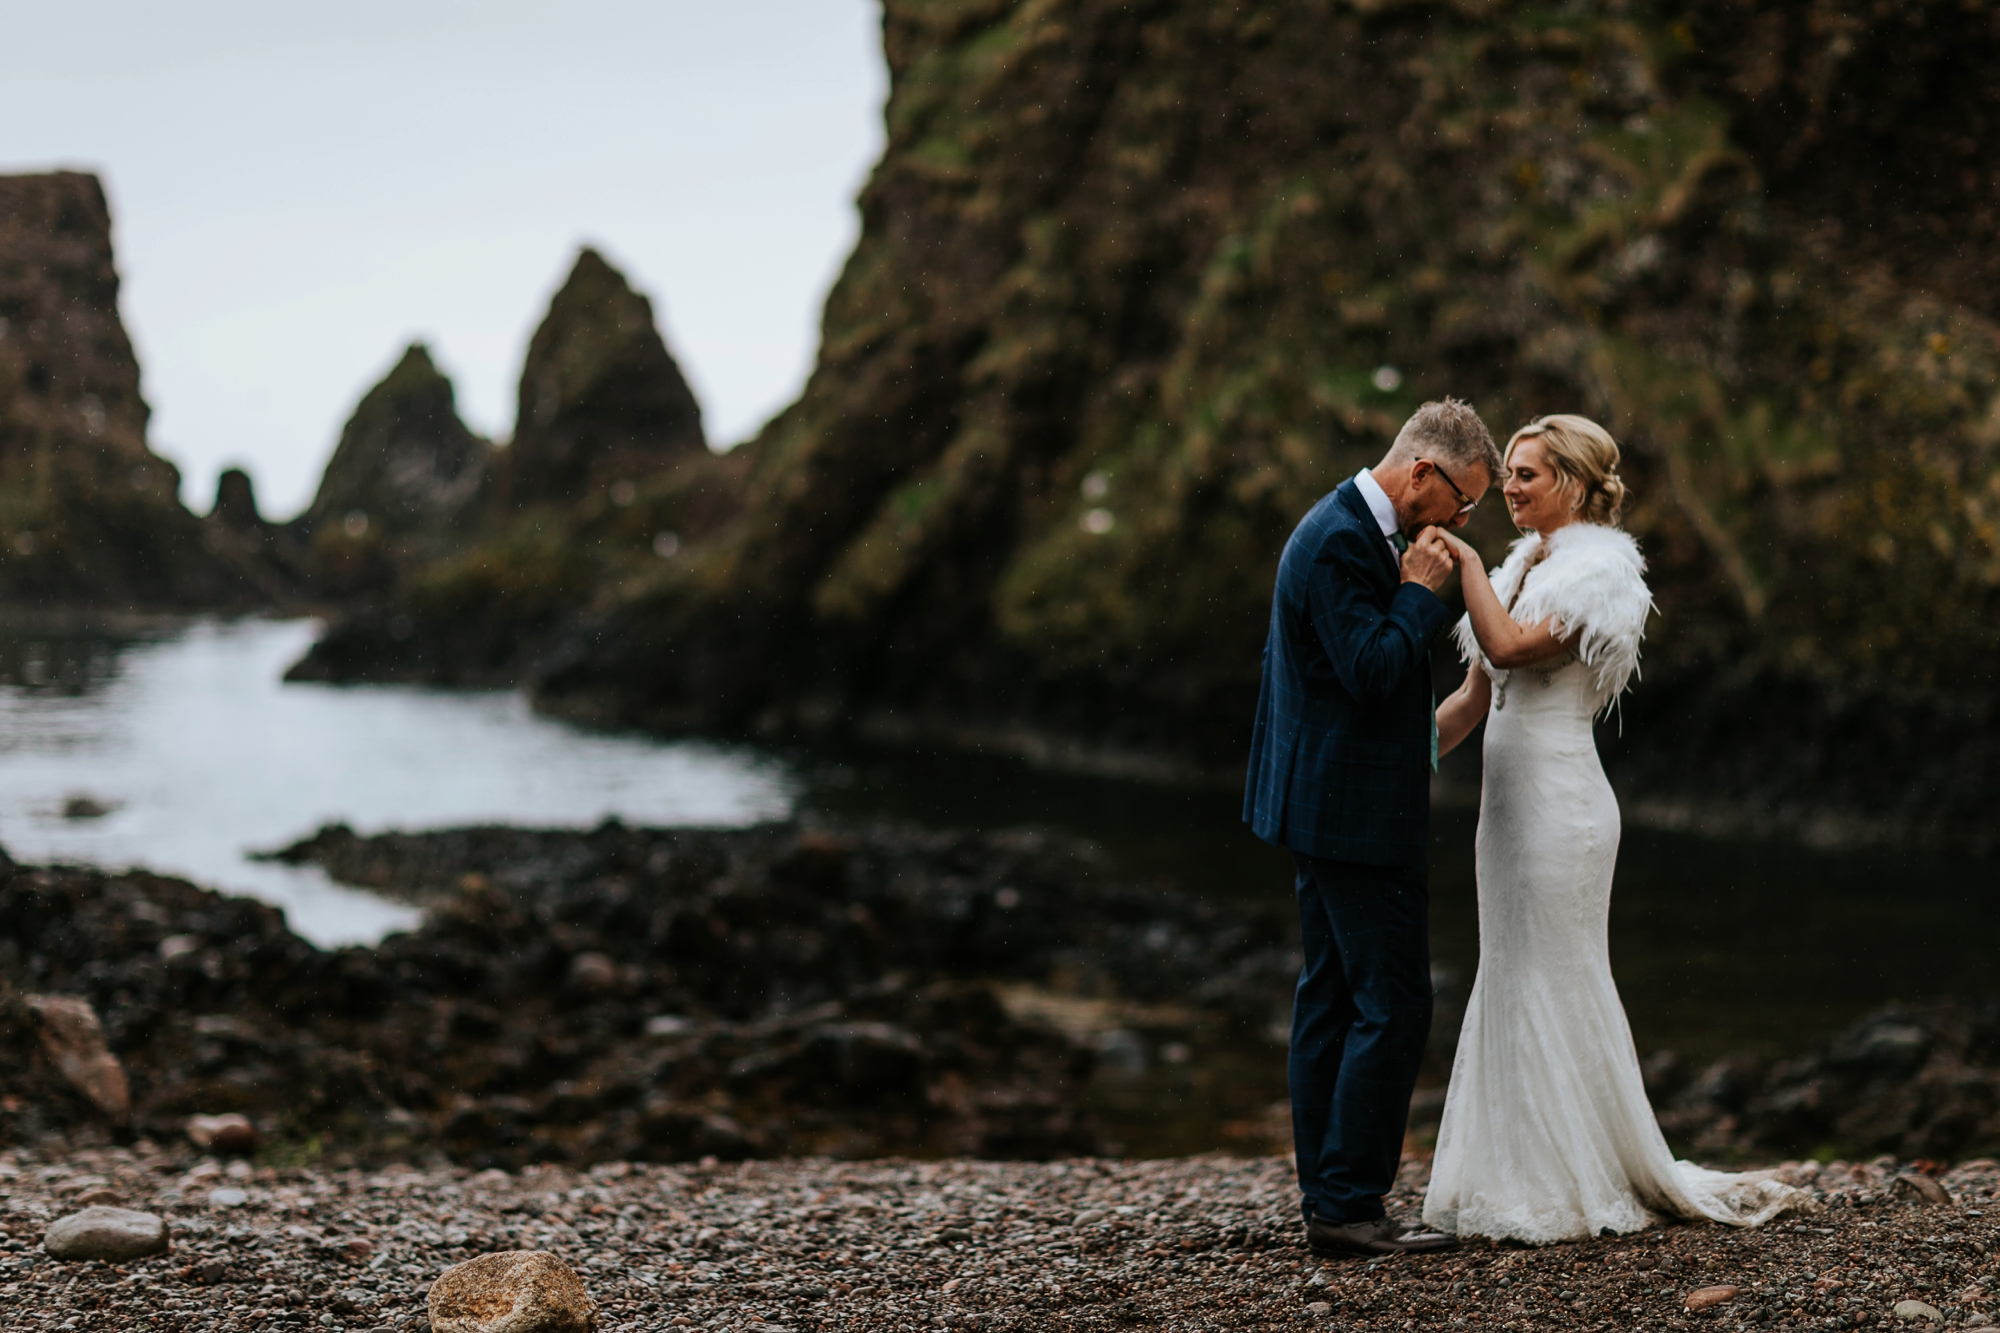 groom kissing bride's hand at beach at Dunnottar Castle, Stonehaven